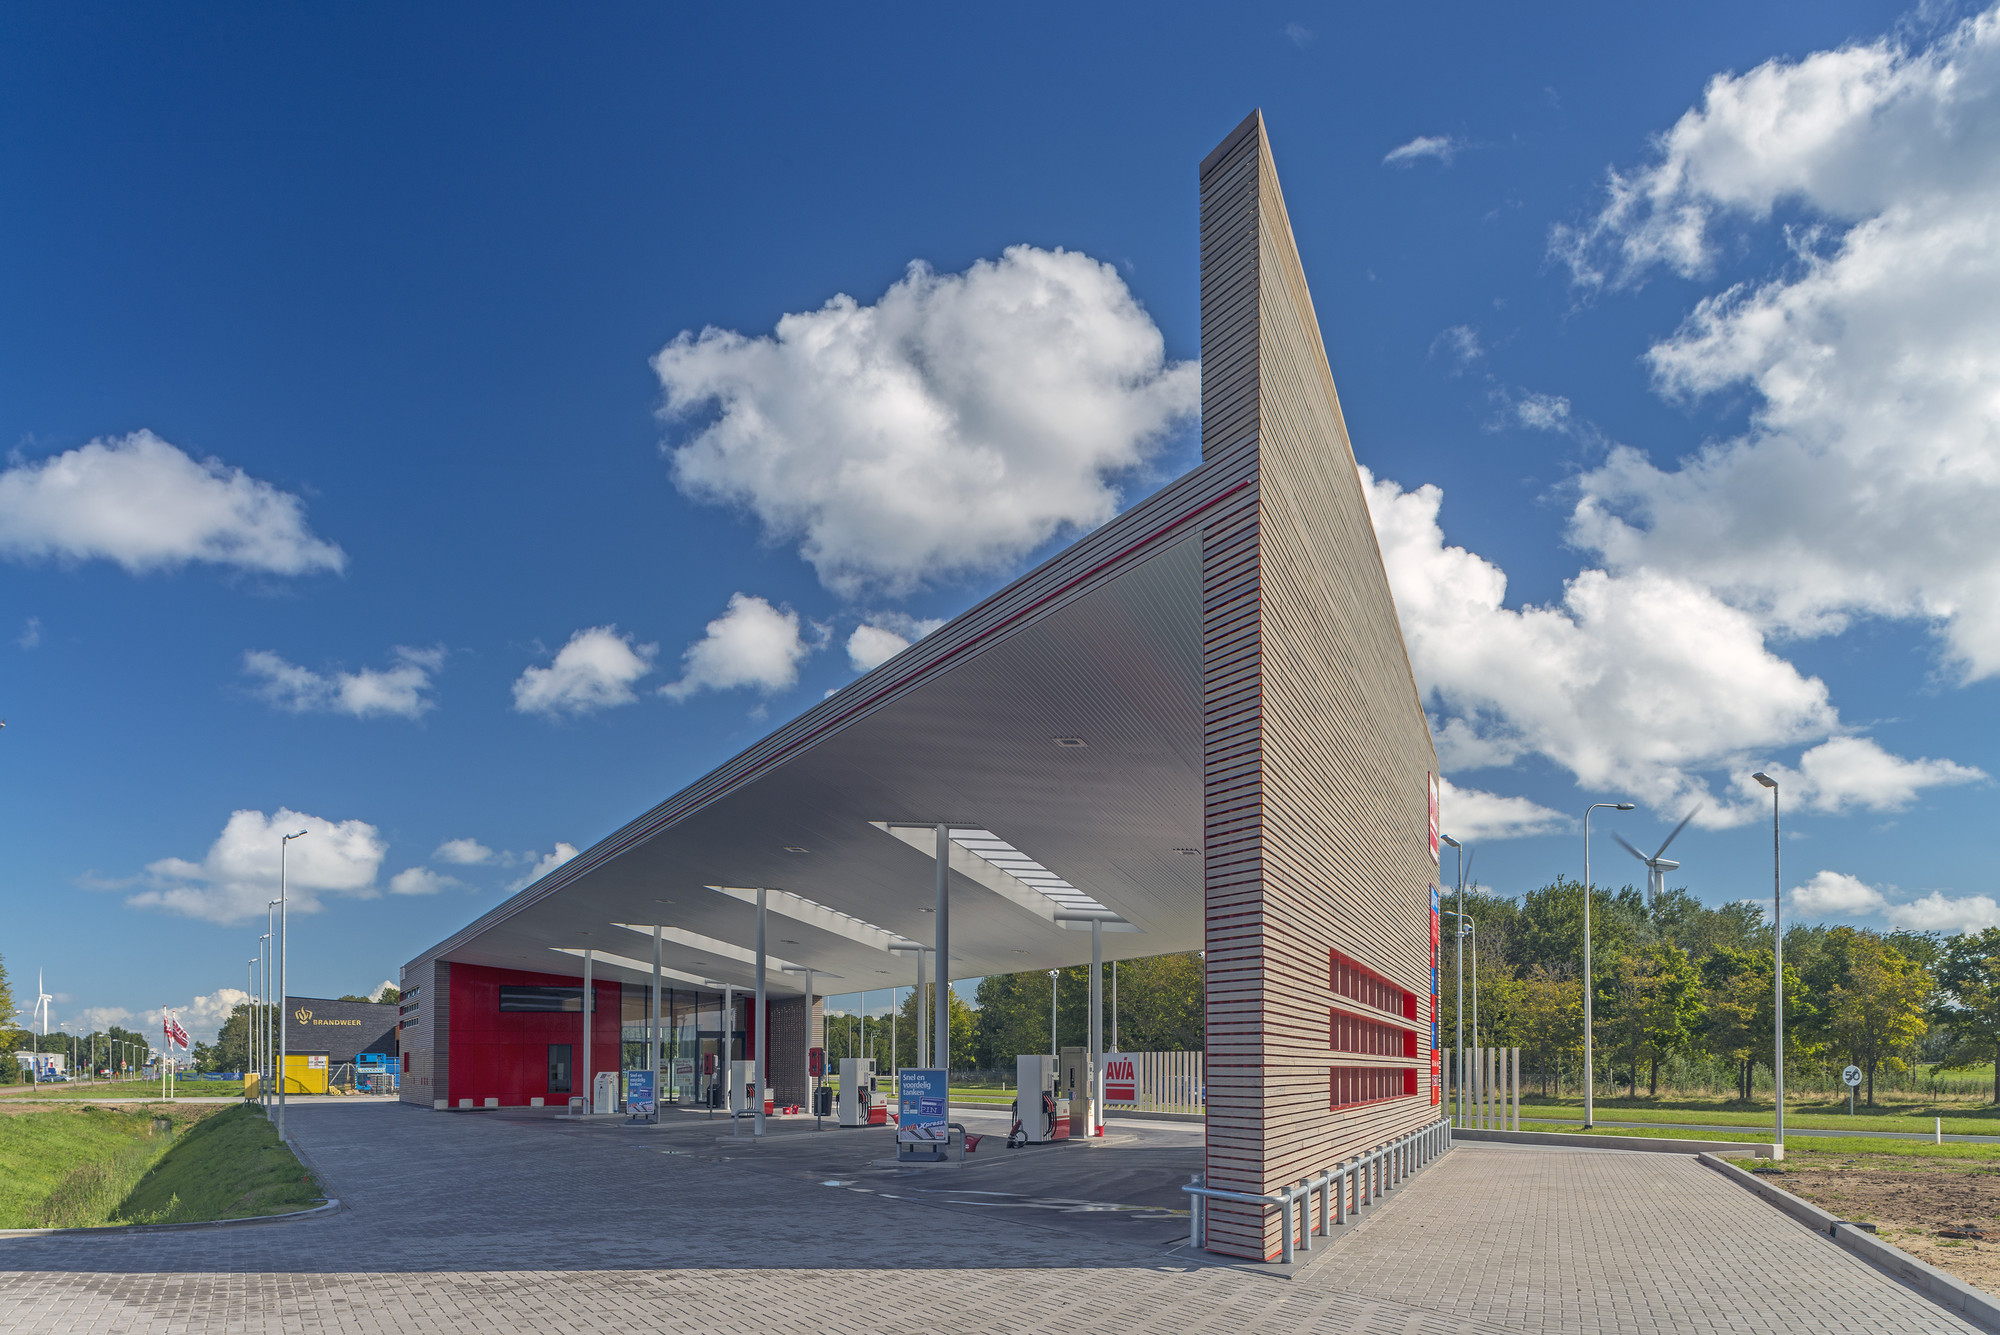 Sustainable Gas Station Avia Marees / Knevel Architecten, © John Lewis Marshall